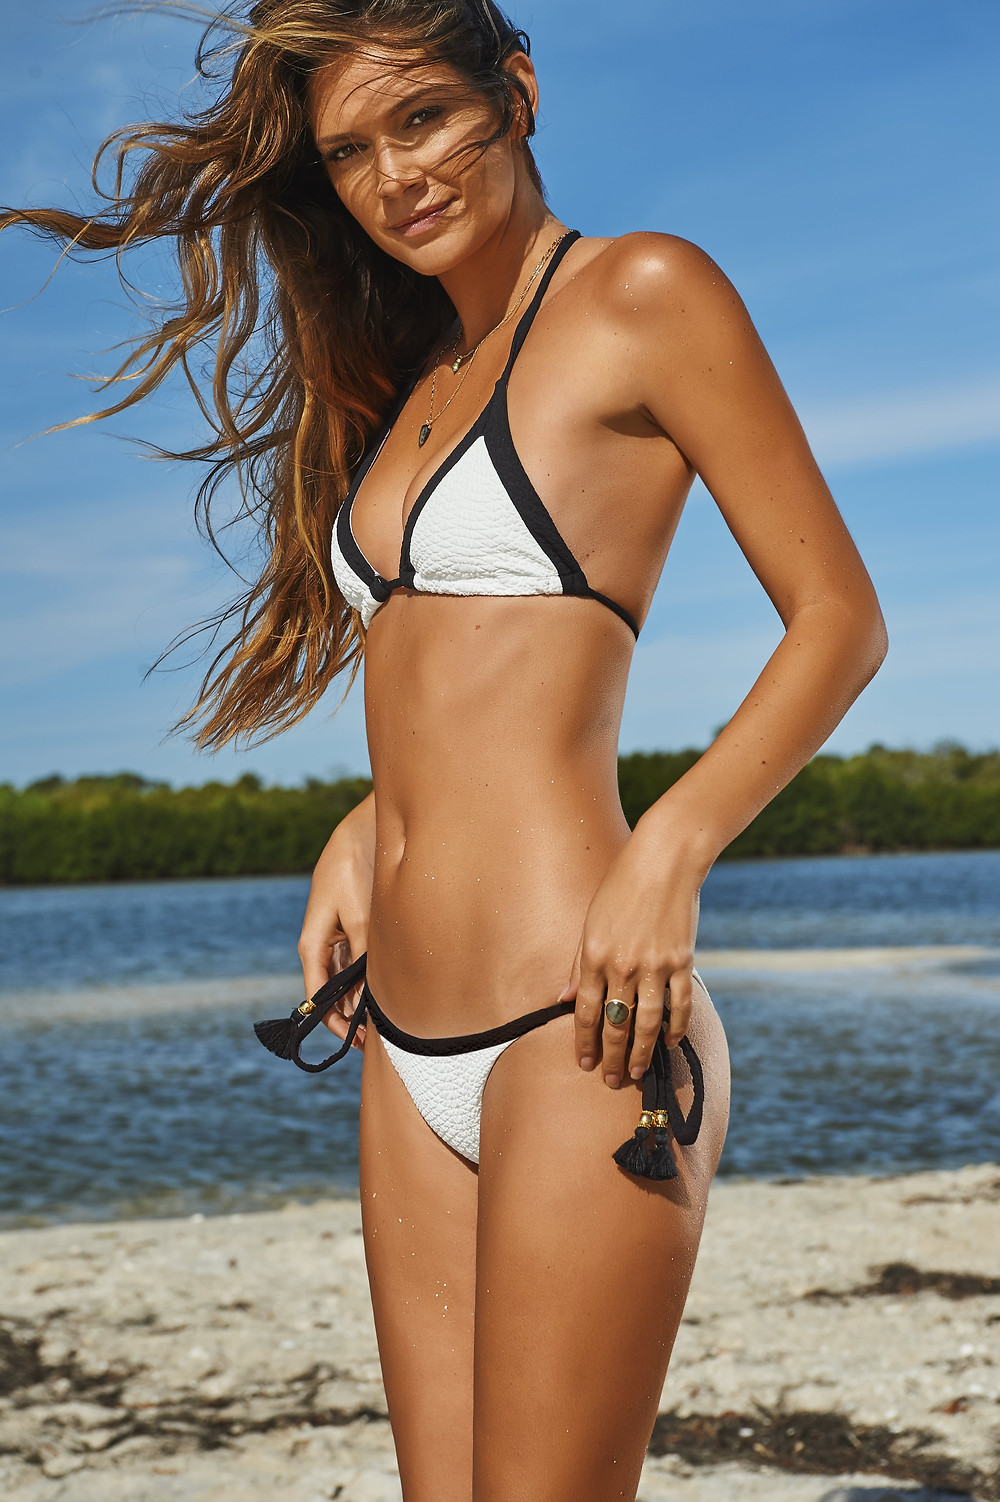 Woman standing on a beach wearing a white textured bikini top and bottom with black trim